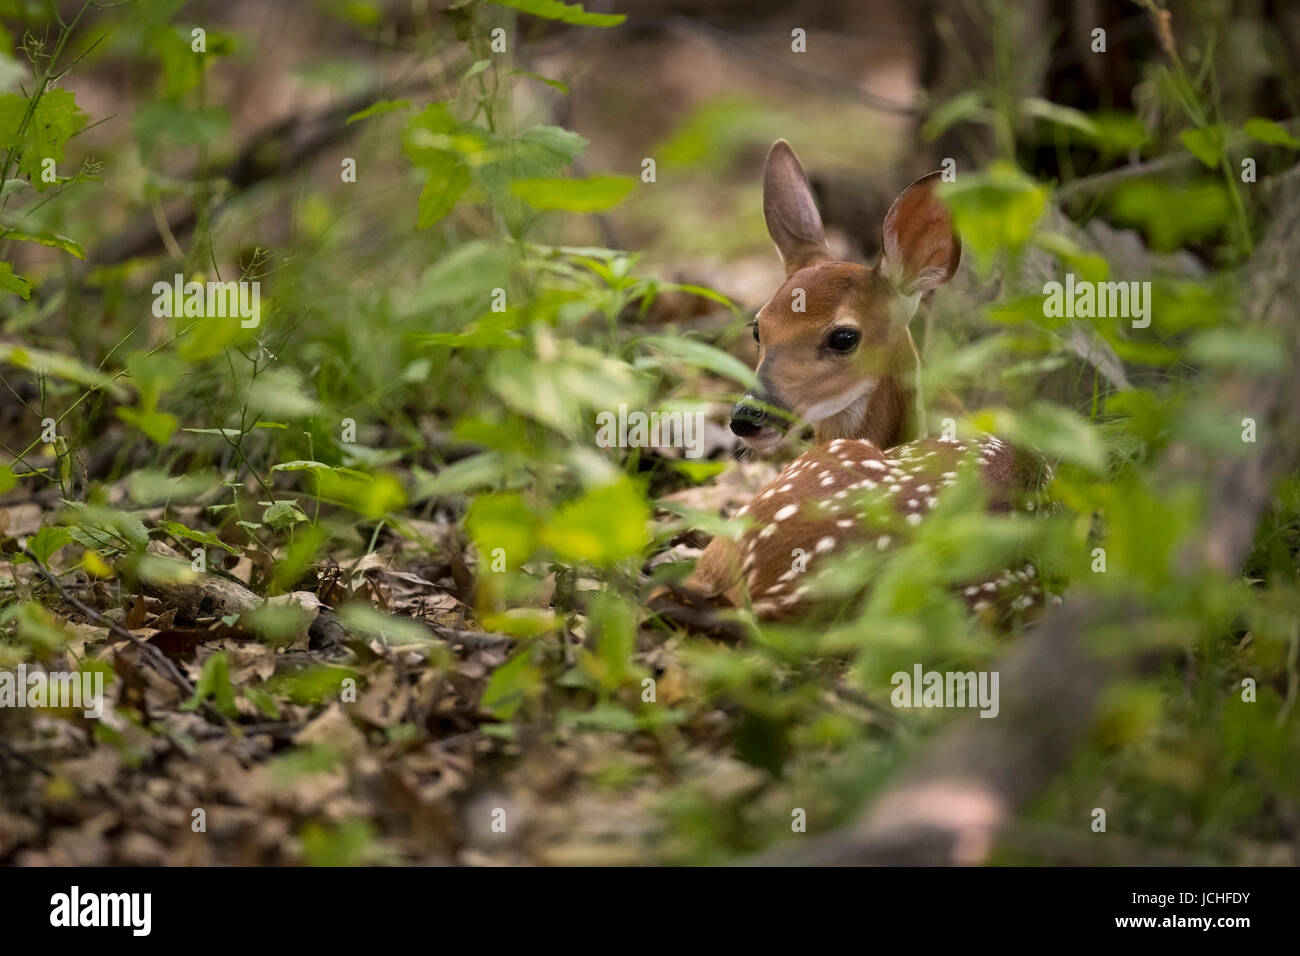 A fawn whitetail deer hidden in the forest. - Stock Image